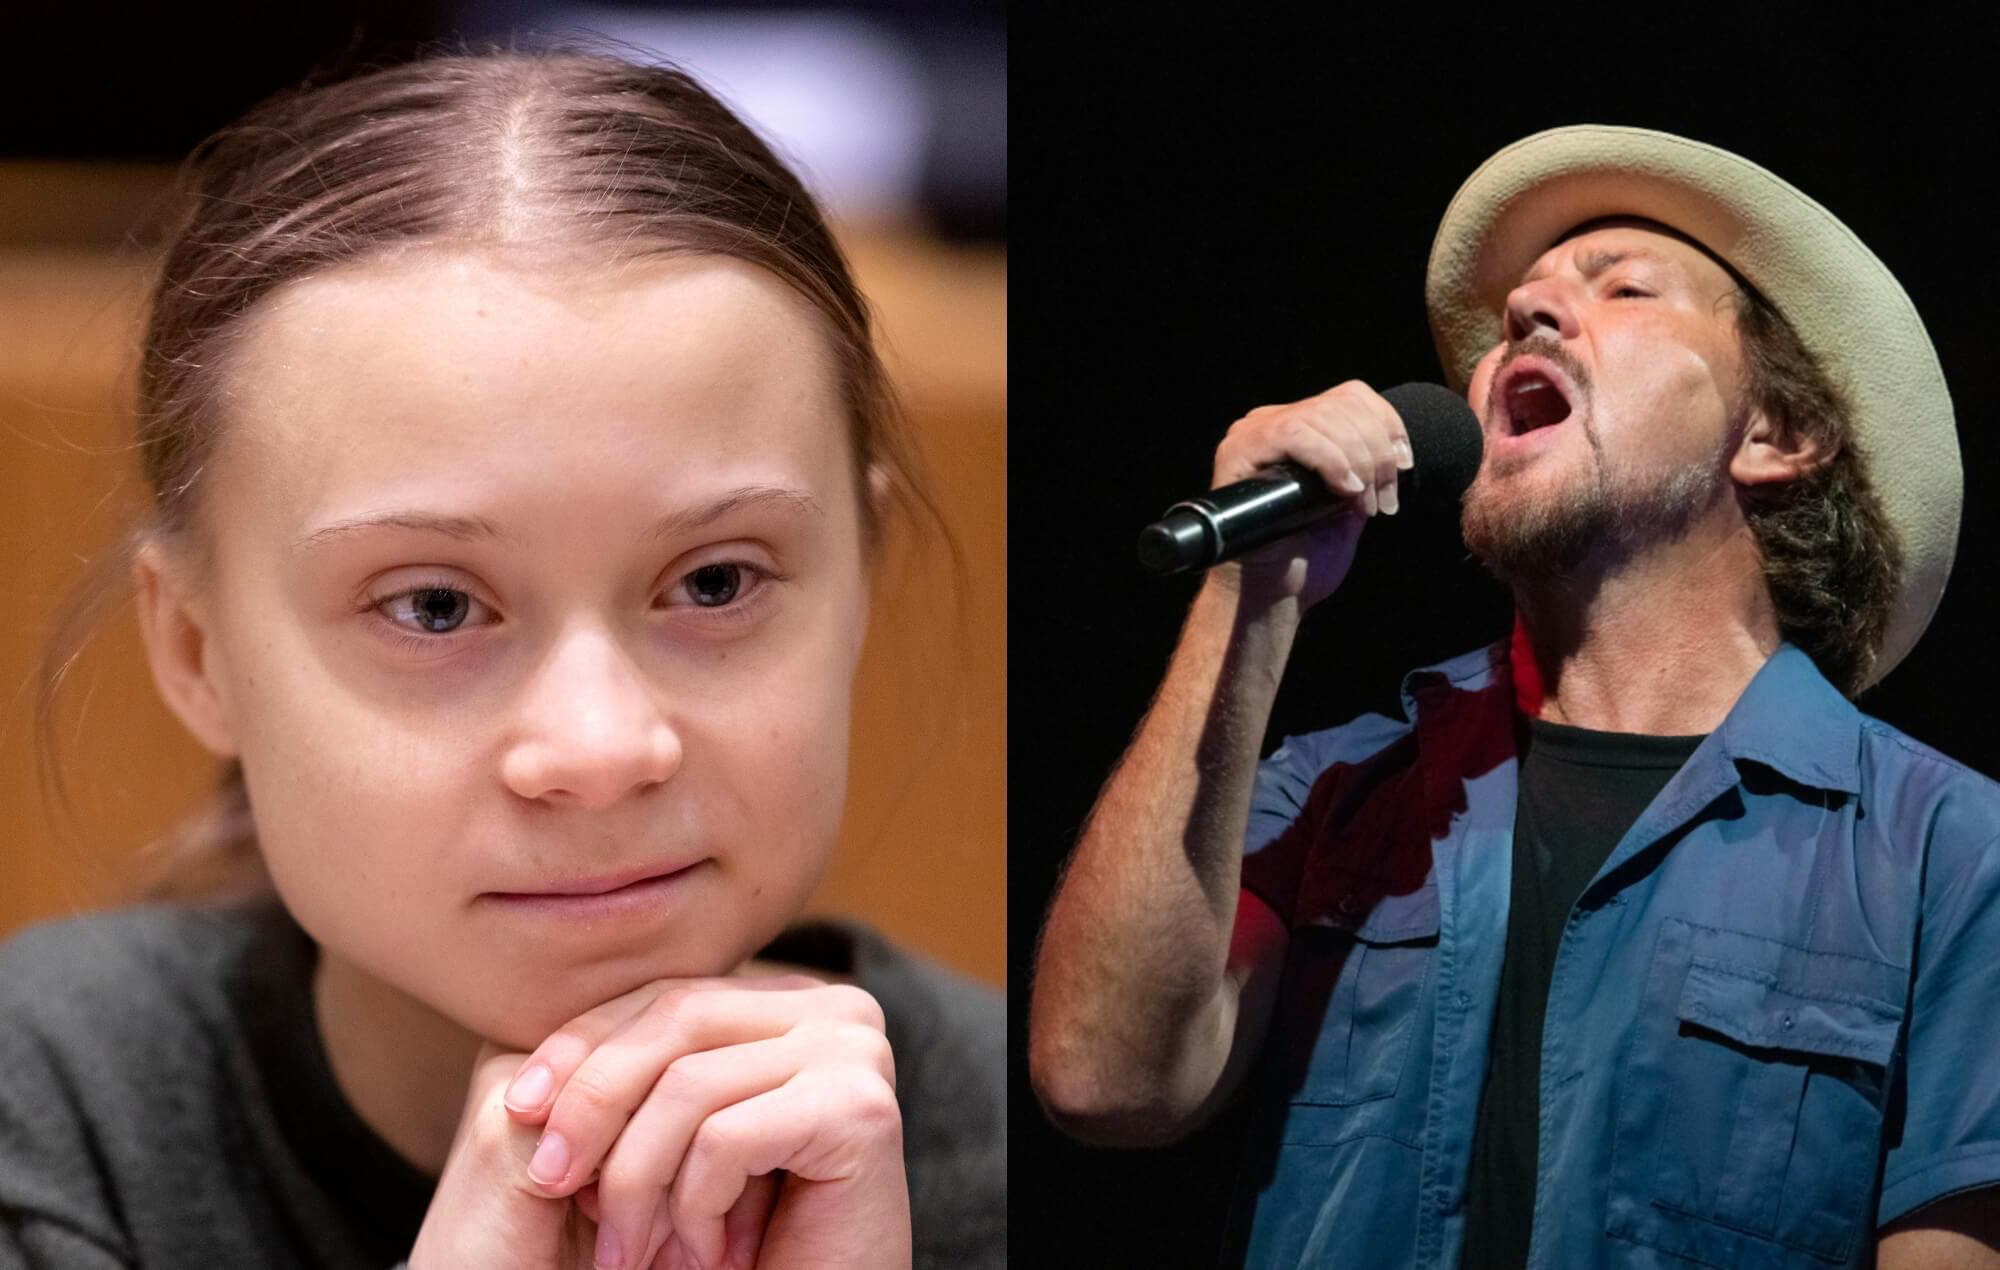 ¡Pearl Jam lanzó el video de 'Retrograde' con Greta Thunberg!